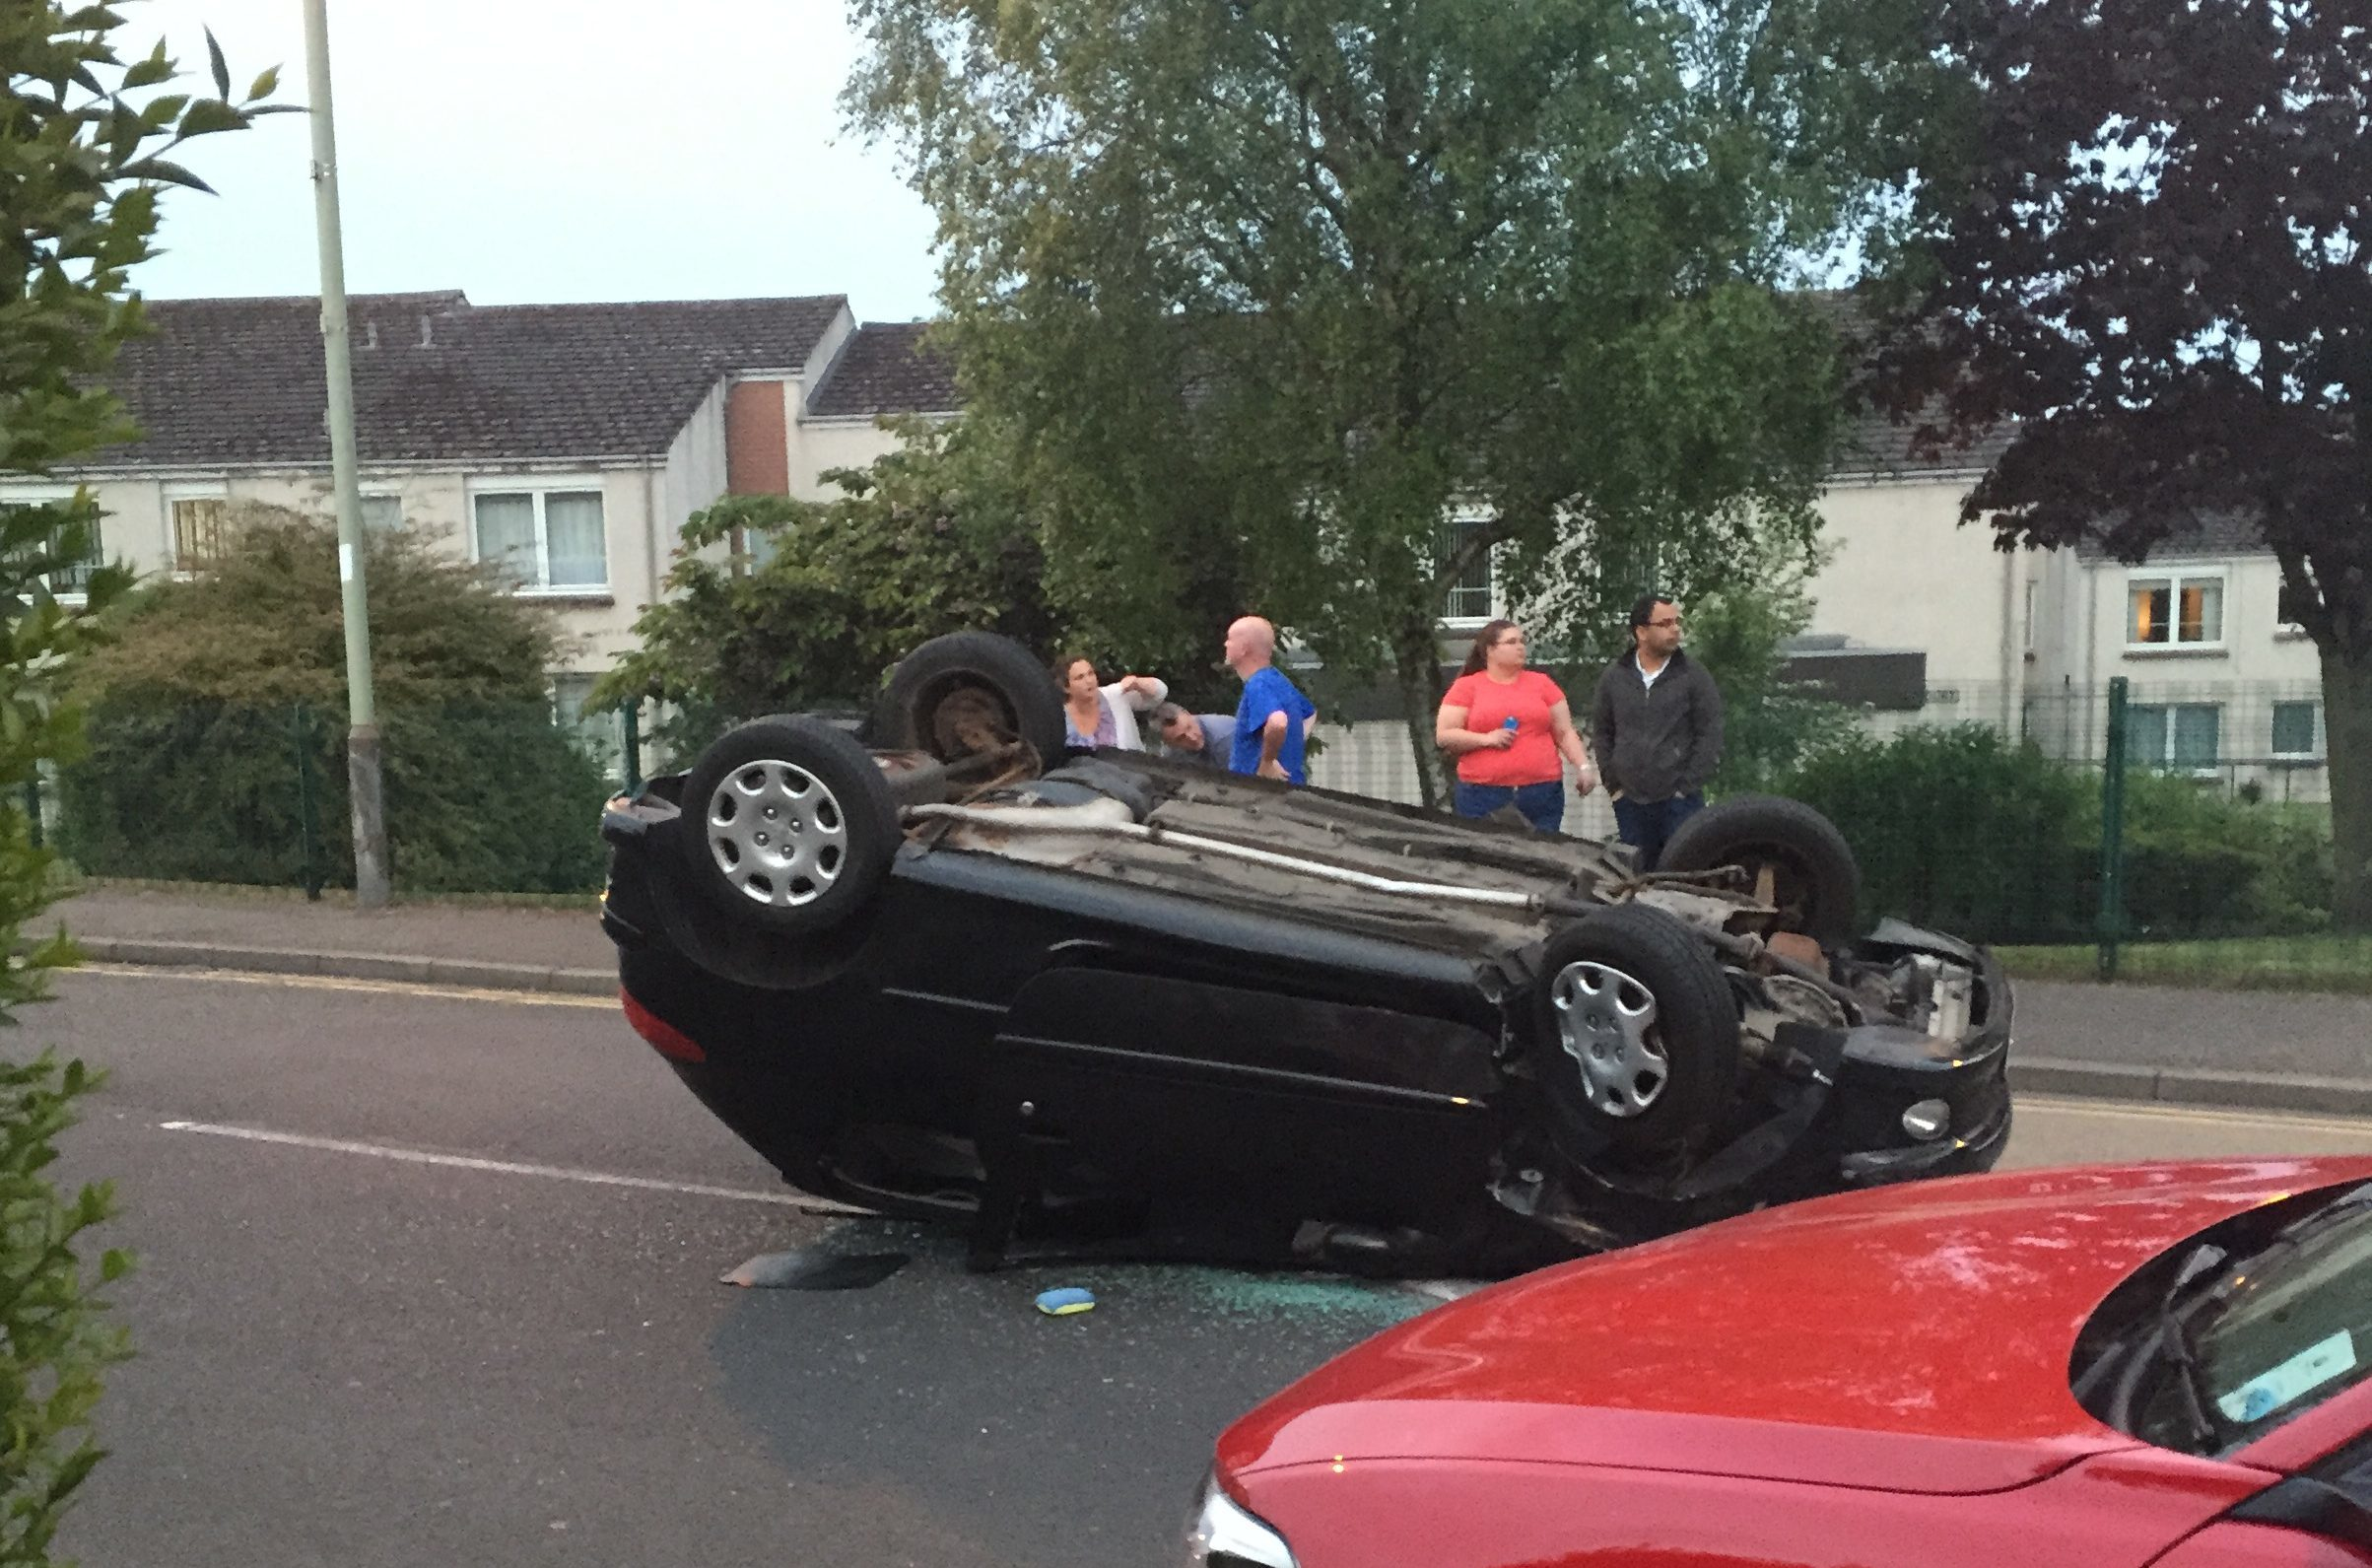 The overturned car at Monifieth.